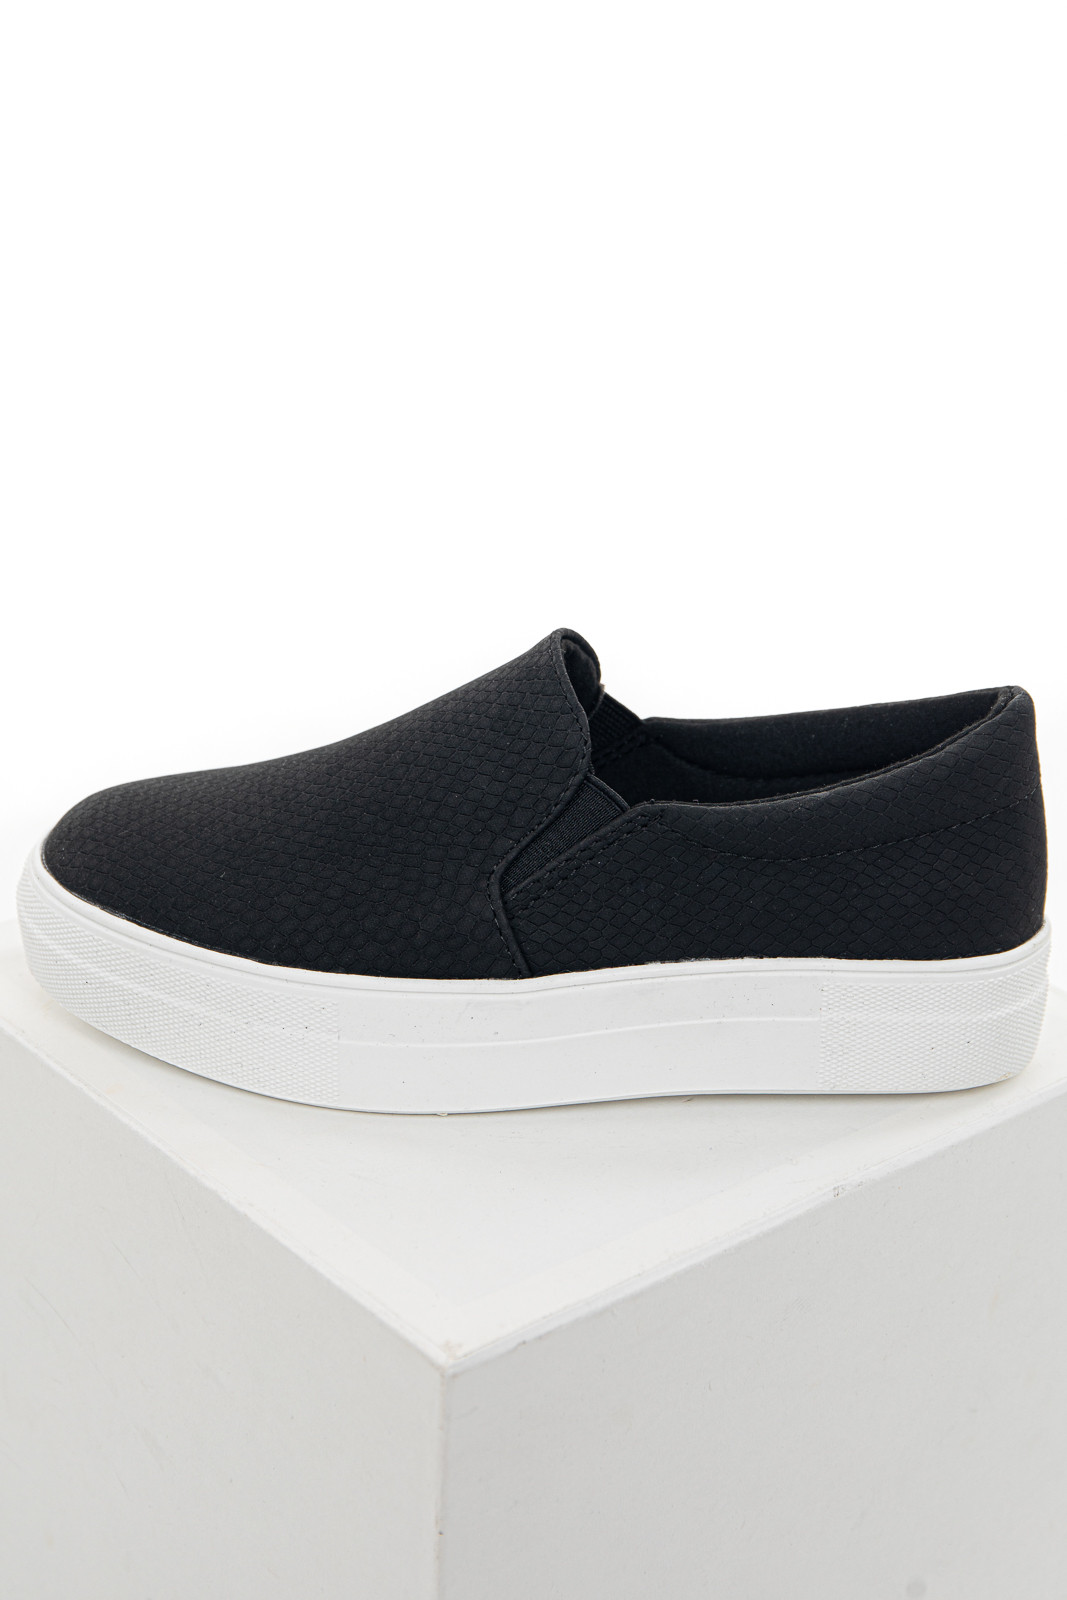 Black Snakeskin Textured Slip On Sneakers with Rubber Soles